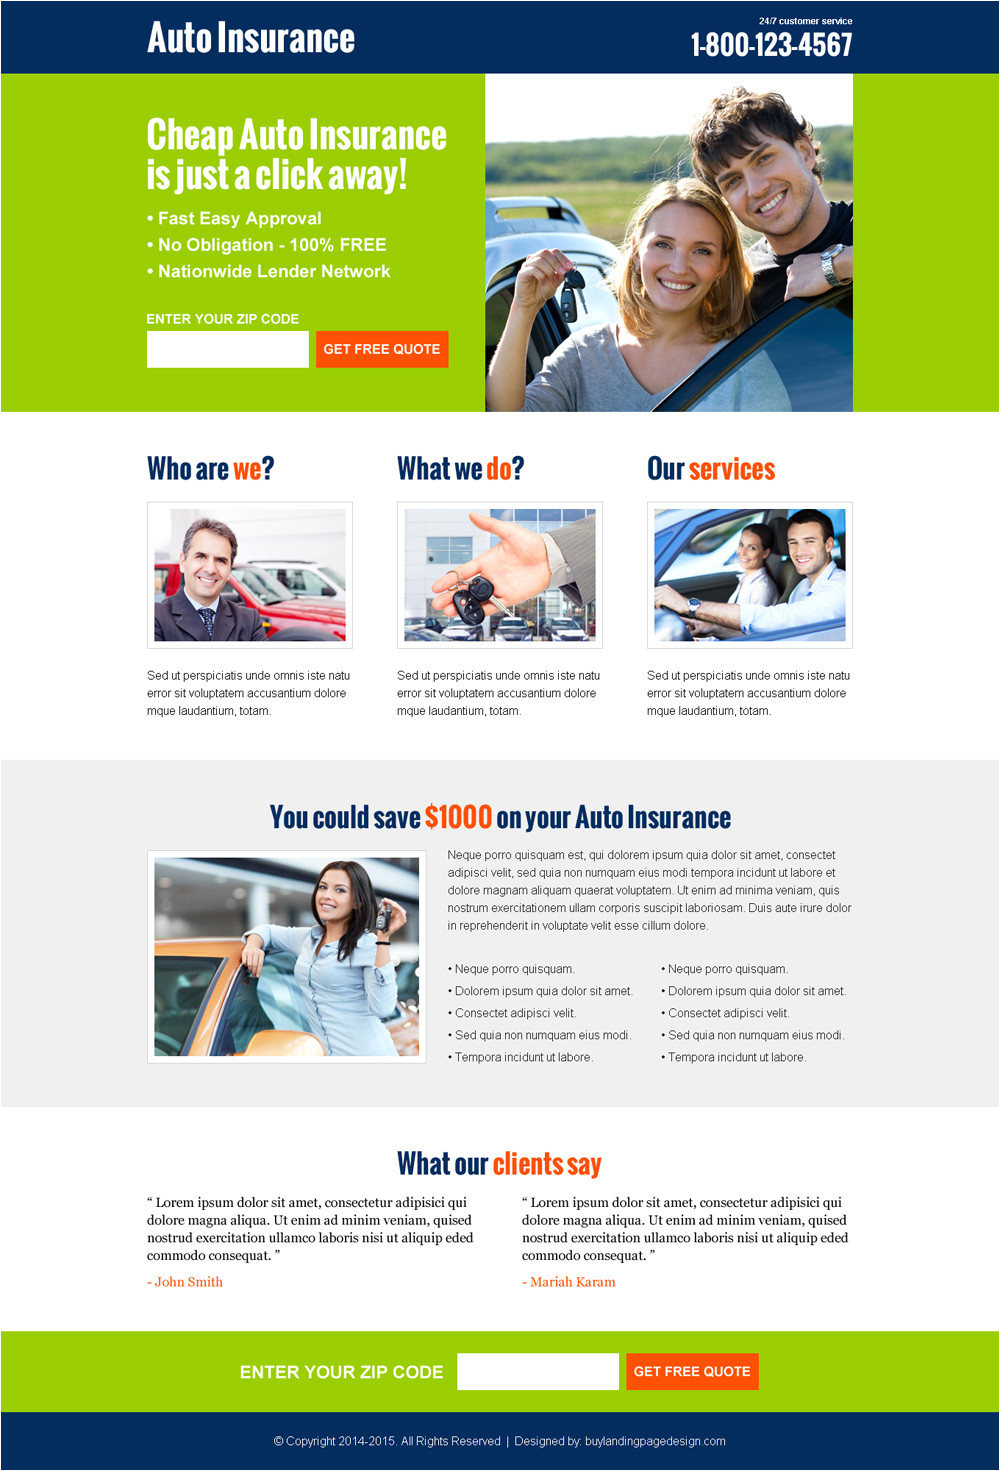 best landing pages to capture auto insurance leads and sales 2016